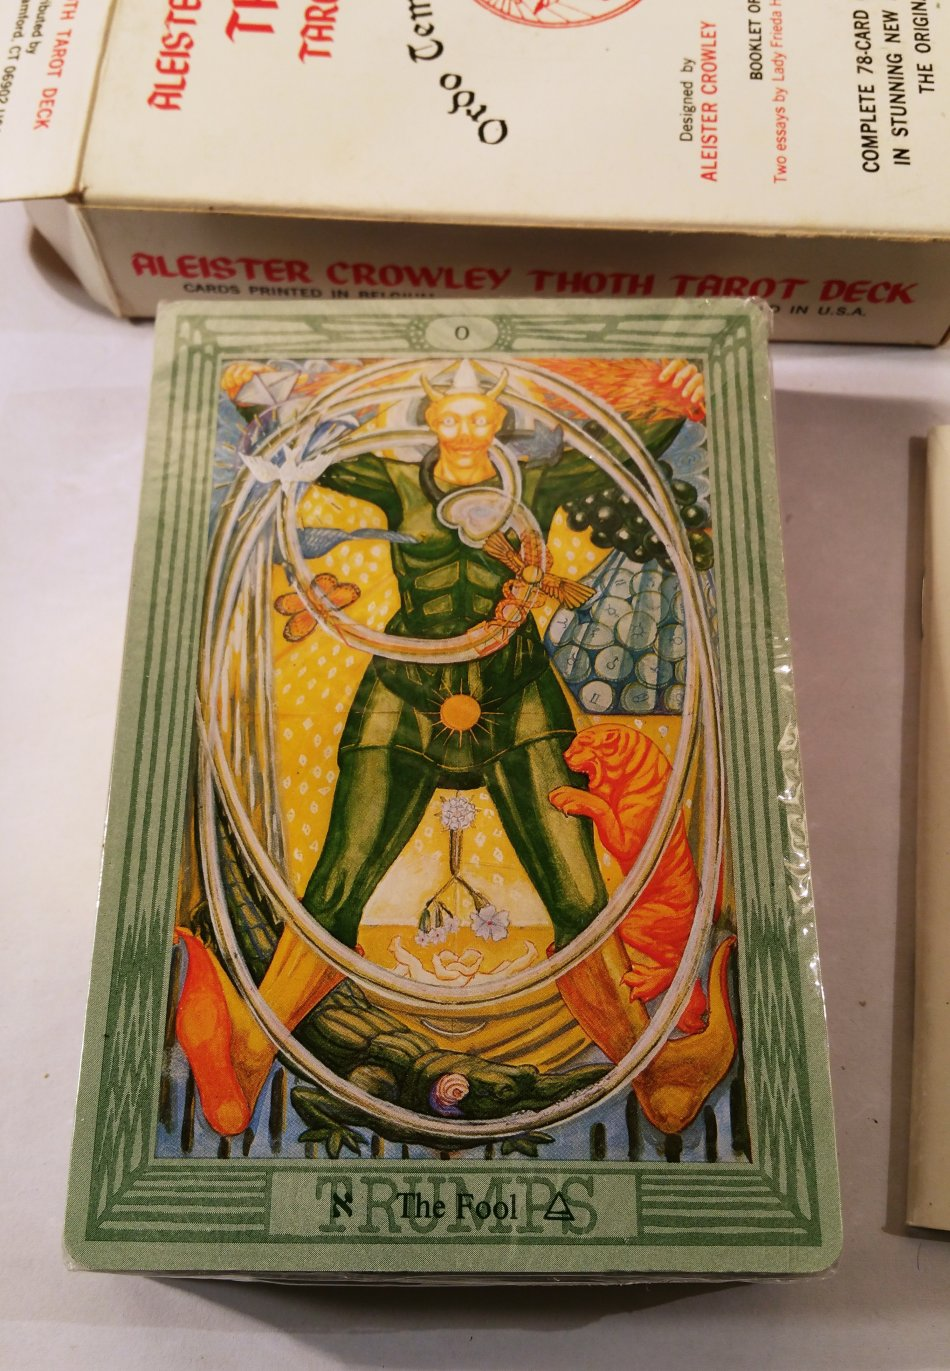 Books, Cards & Calendars - ALEISTER CROWLEY THOTH TAROT DECK